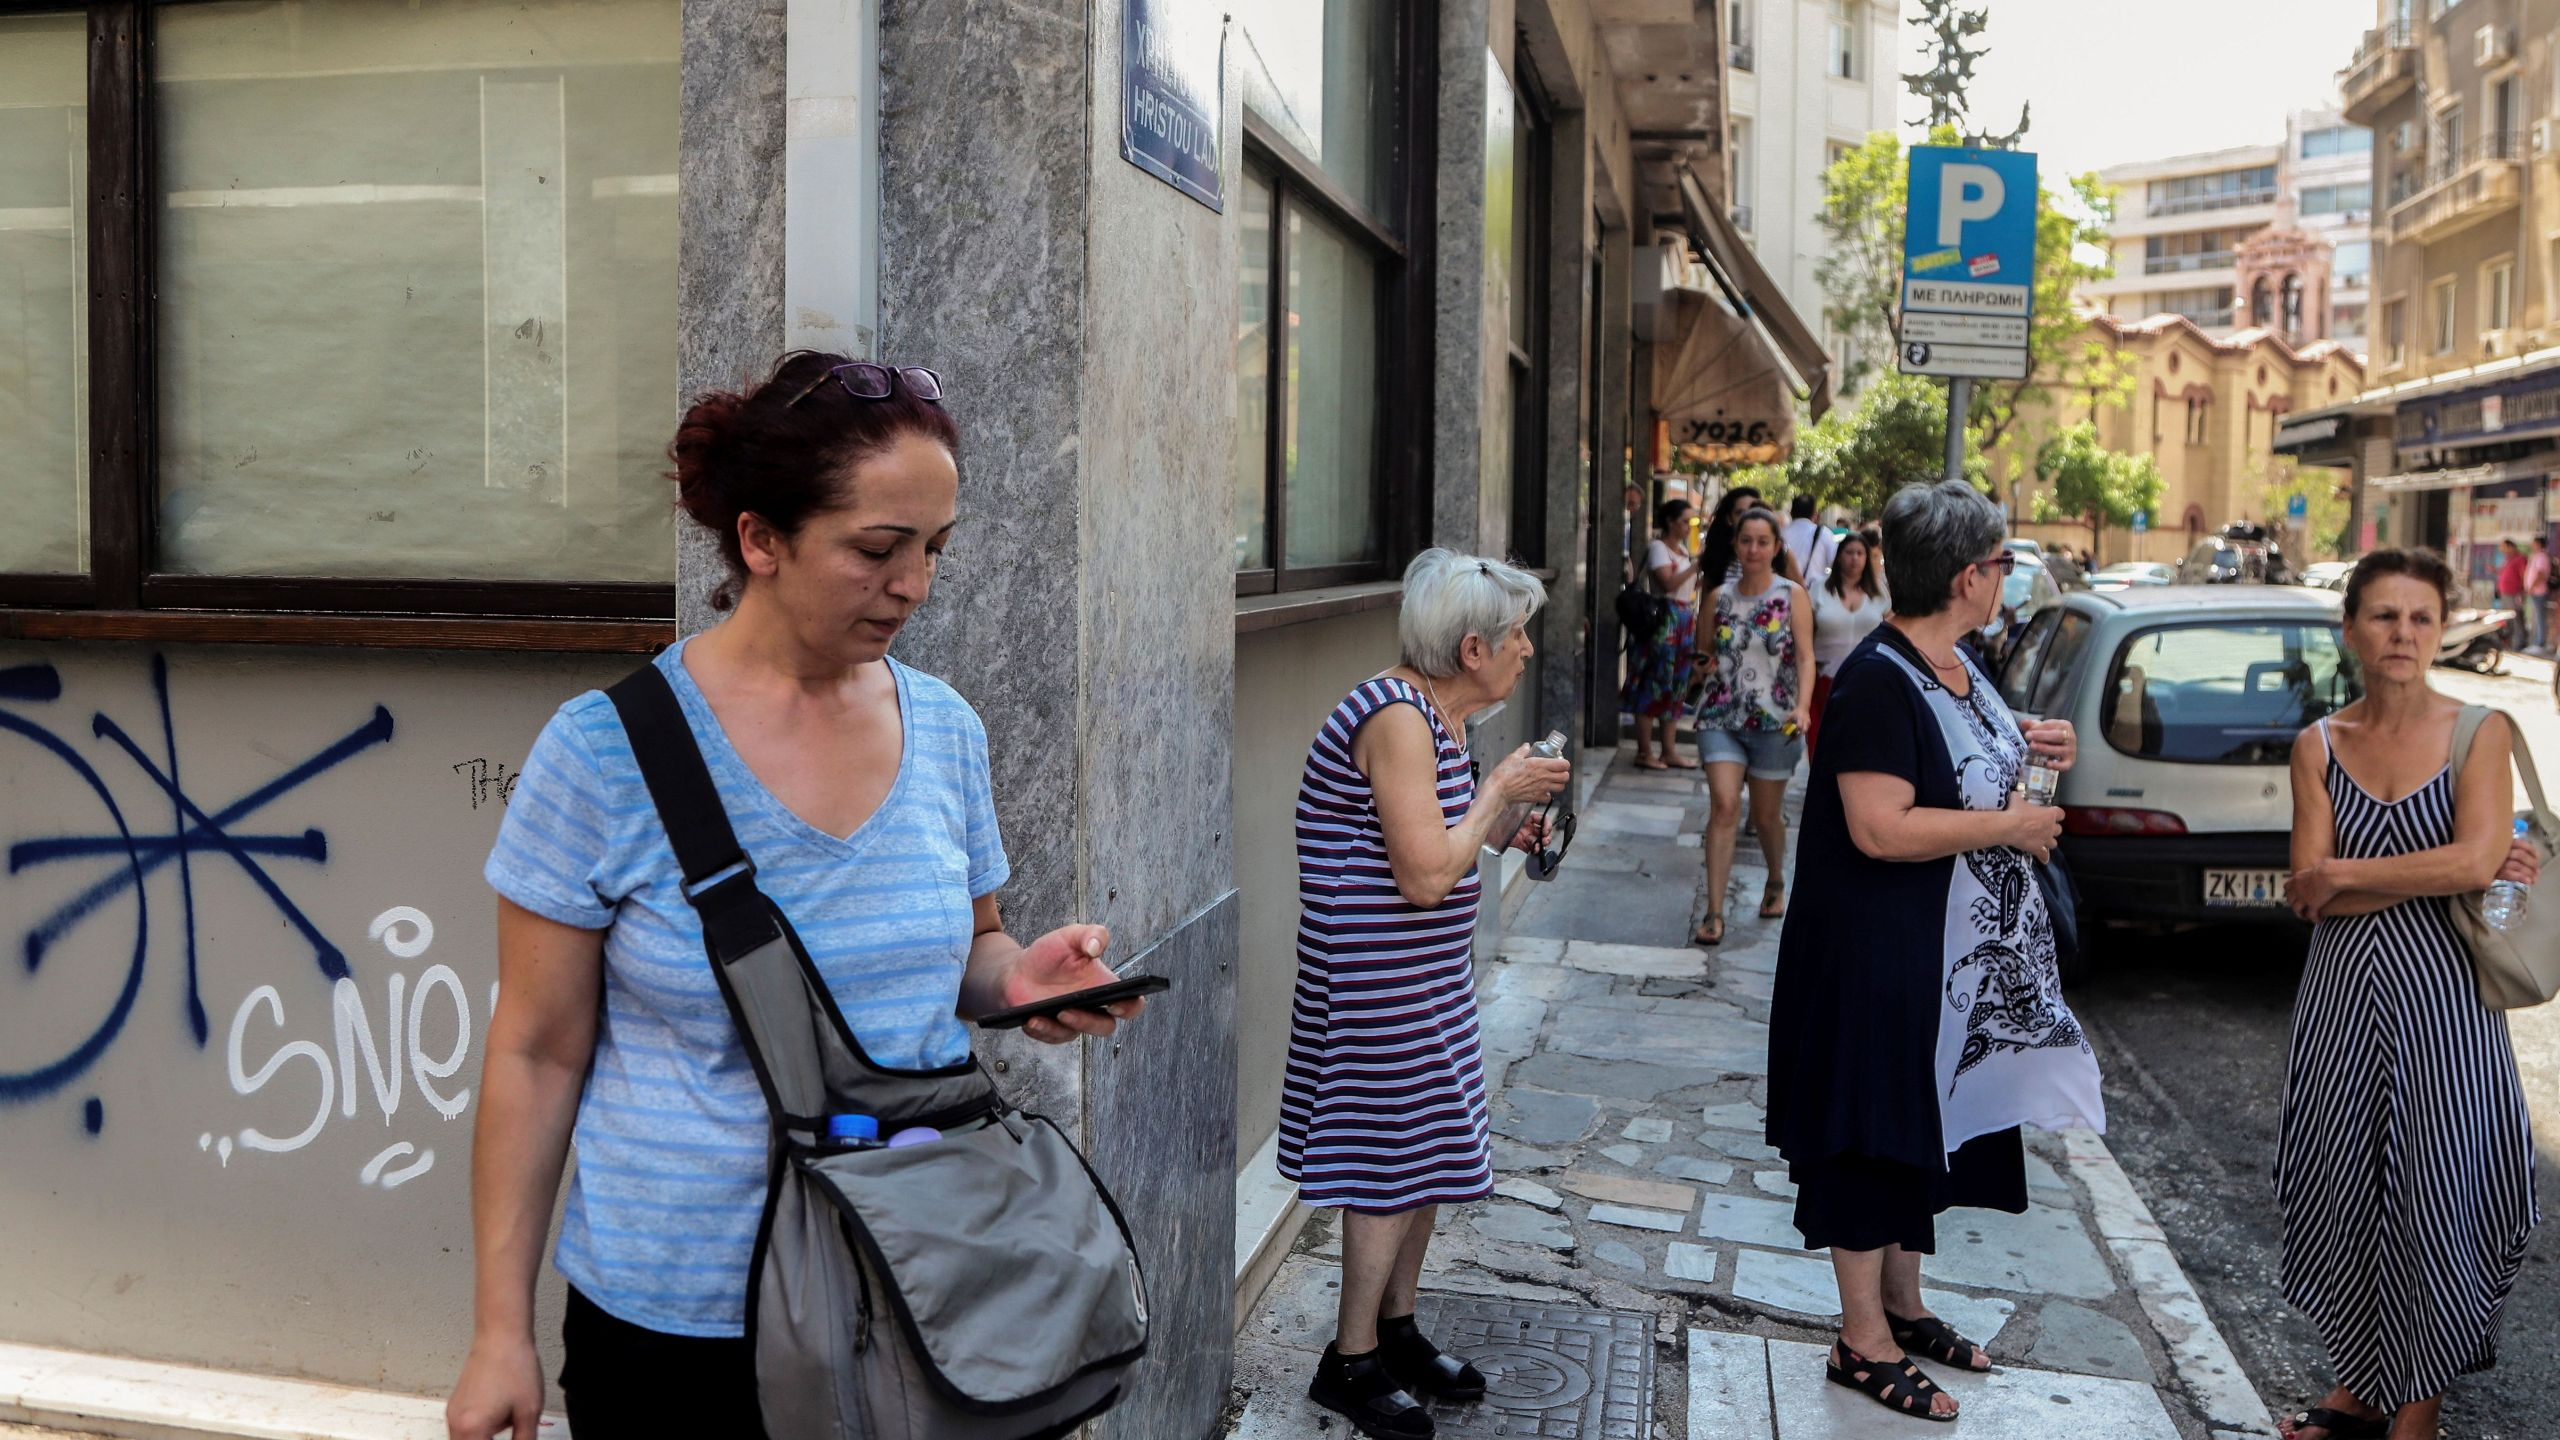 People stand outside buildings in central Athens after an earthquake on July 19, 2019. (Credit: EUROKINISSI/AFP/Getty Images)